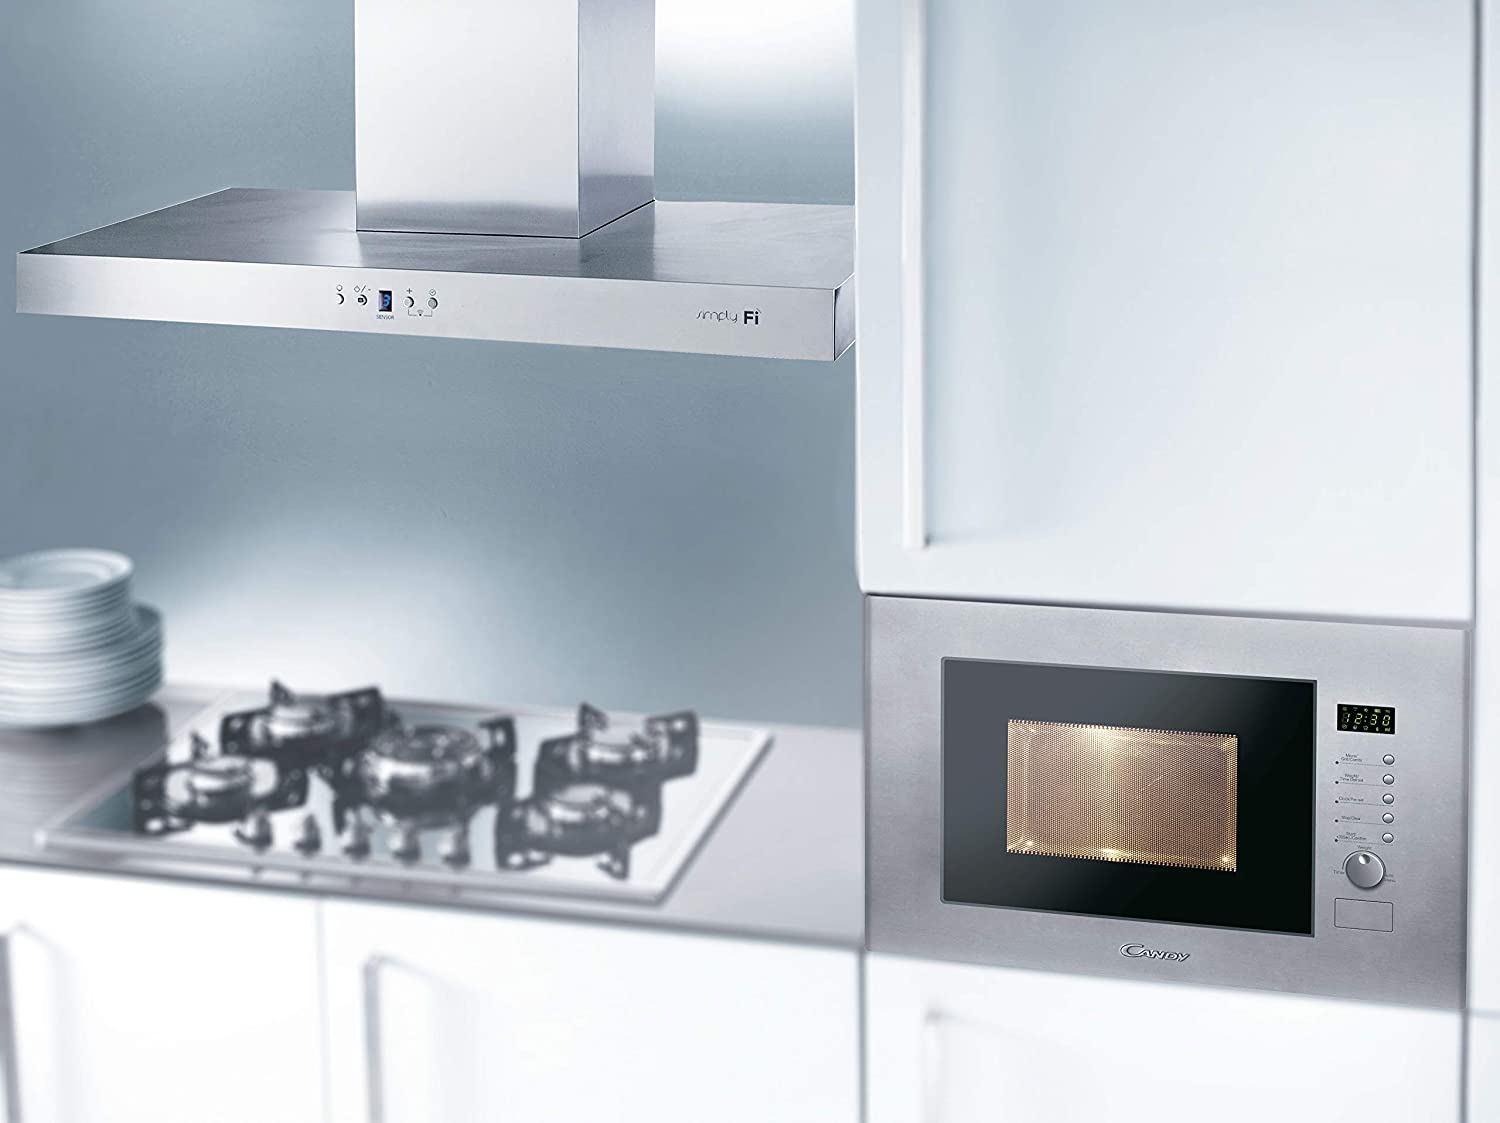 Schema Elettrico Forno Microonde : Candy mic 20 gdfx microonde a incasso 1250 w 20 litri stainless